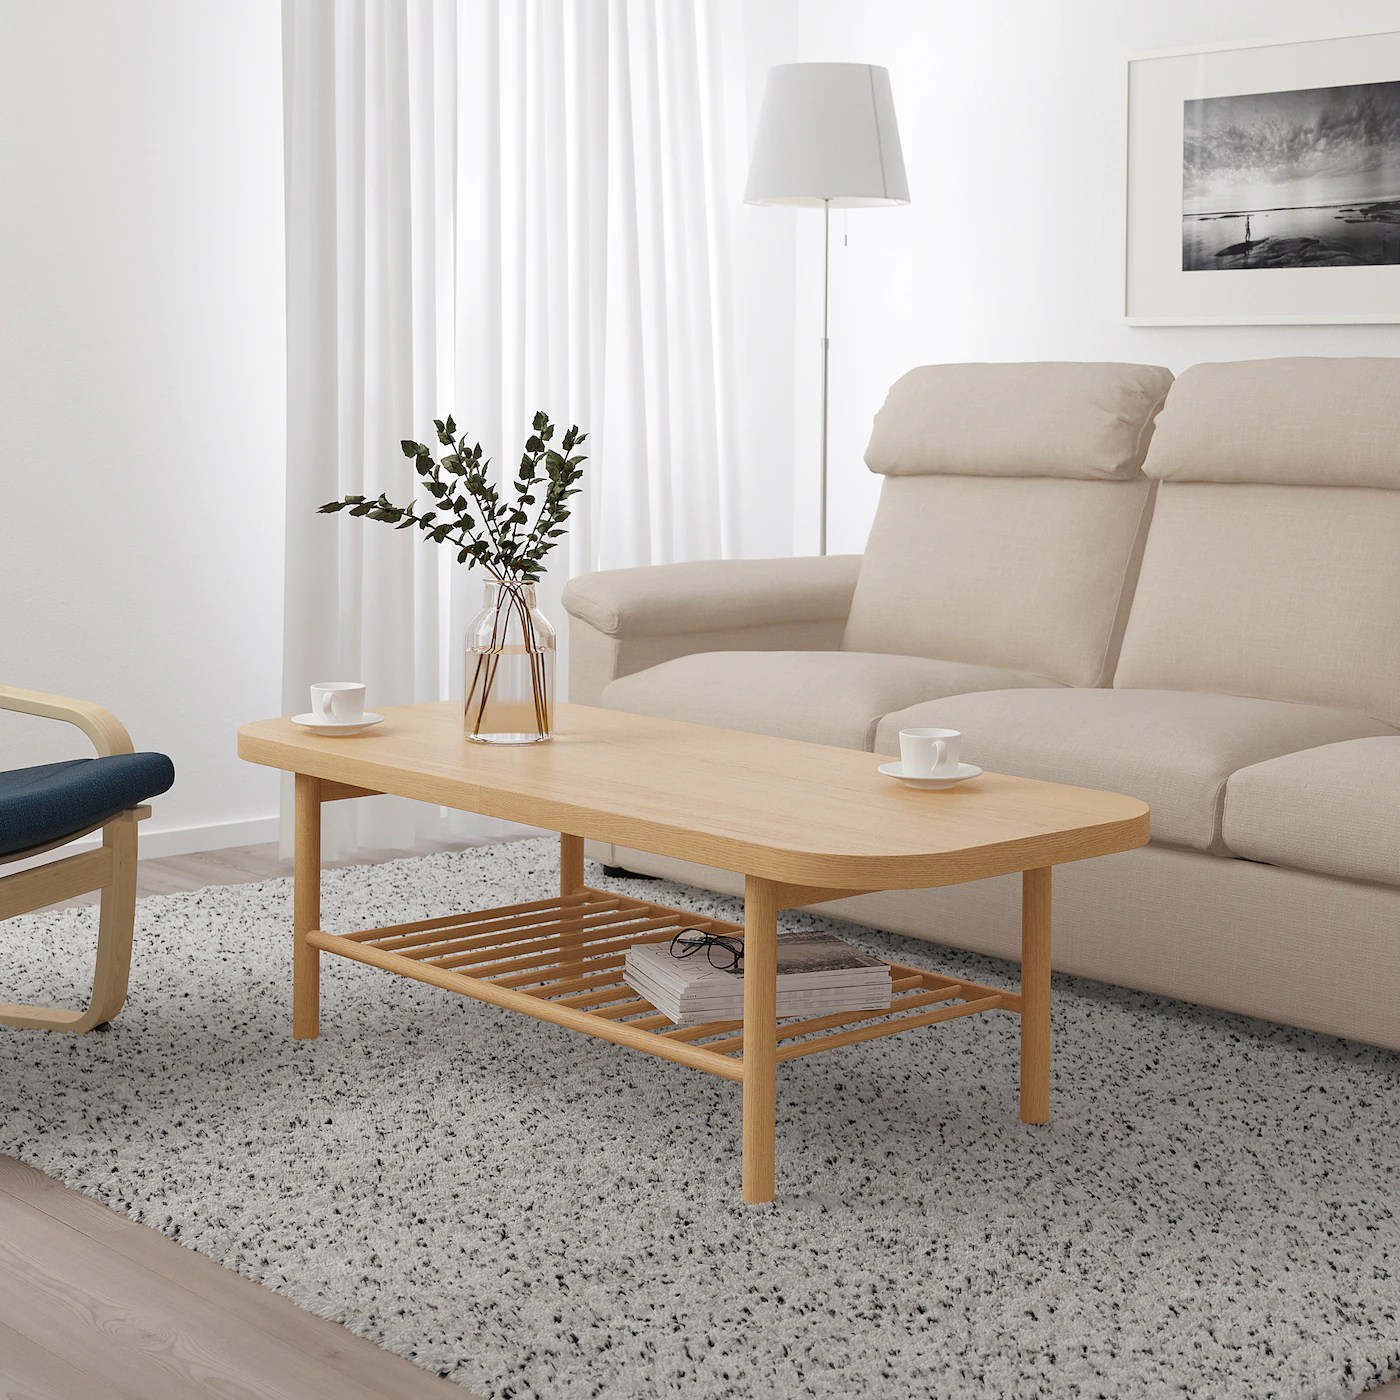 listerby coffee table white stained oak 140x60 cm